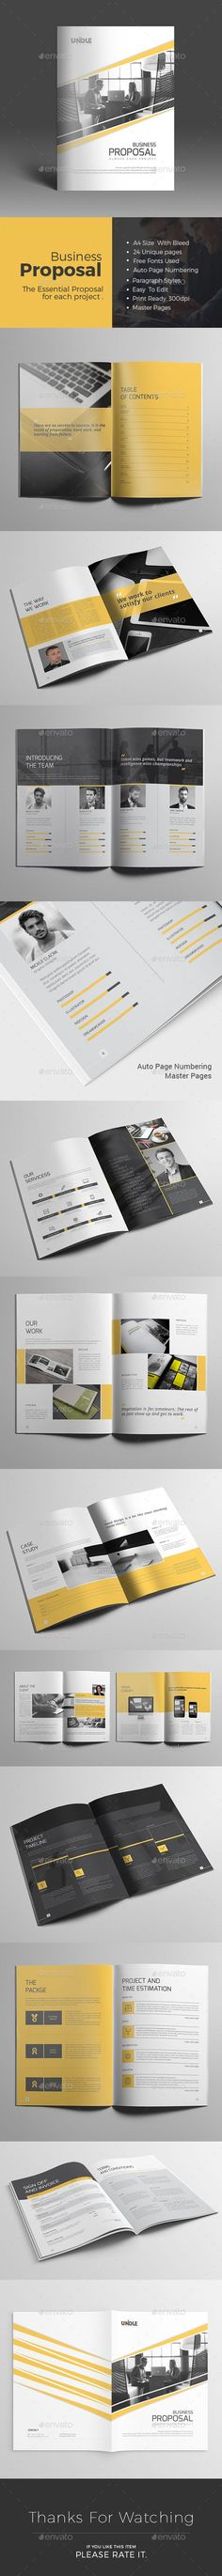 Proposal Proposals, Proposal templates and Brochures - download business proposal template